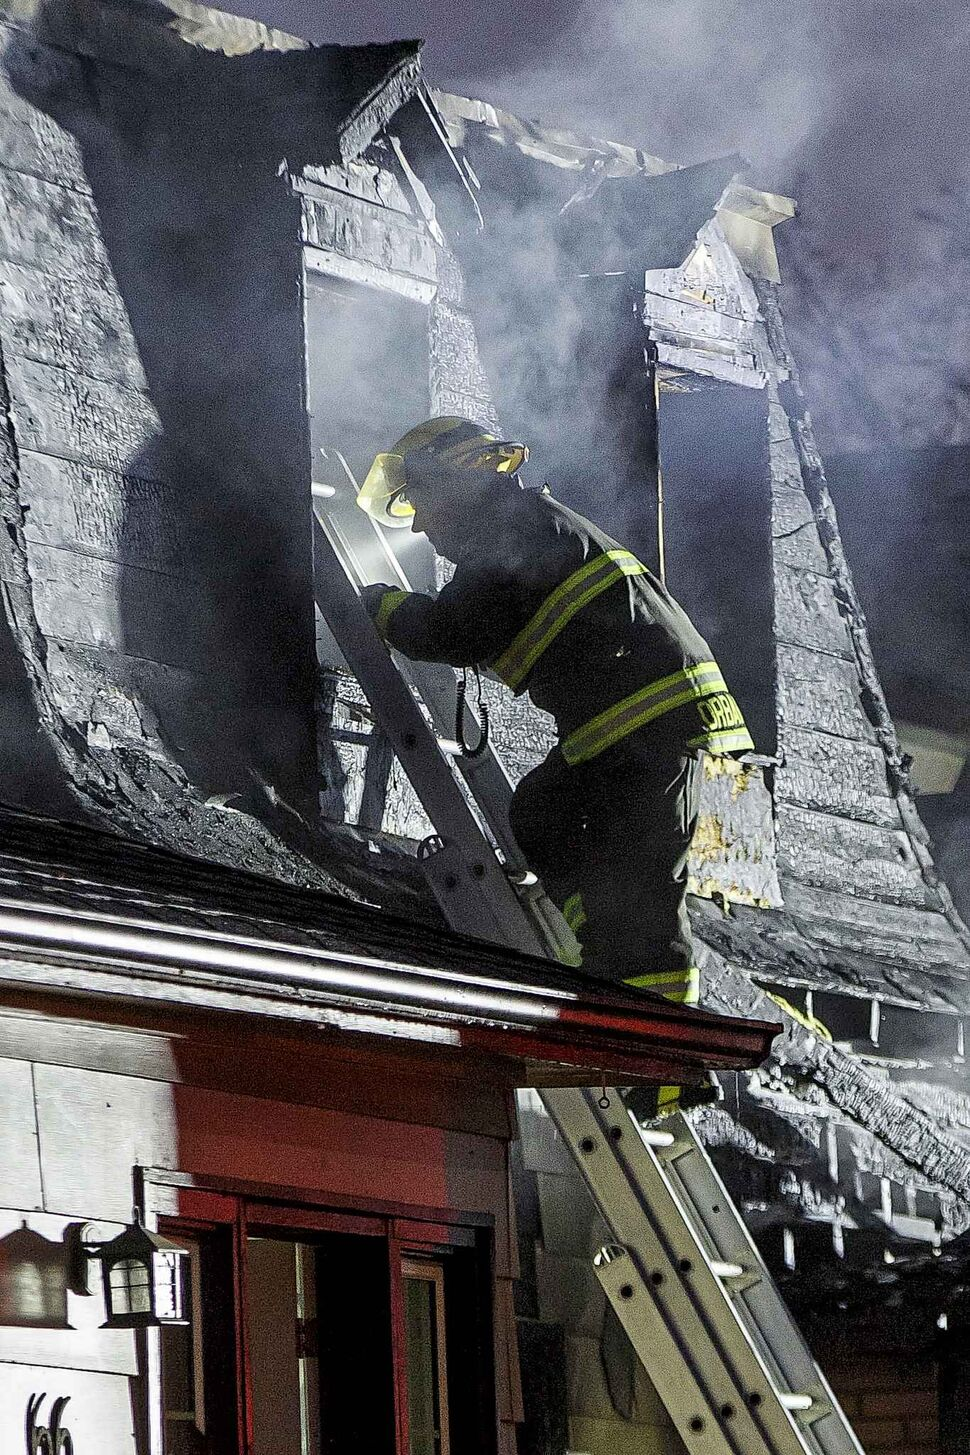 MIKE DEAL / WINNIPEG FREE PRESS</p><p>October 26 — Winnipeg Fire Paramedic Service personnel work at putting out a house fire at 68 Prince Edward St. in the Point Douglas neighbourhood where two people are missing and may have died in the fire early Friday morning.</p>